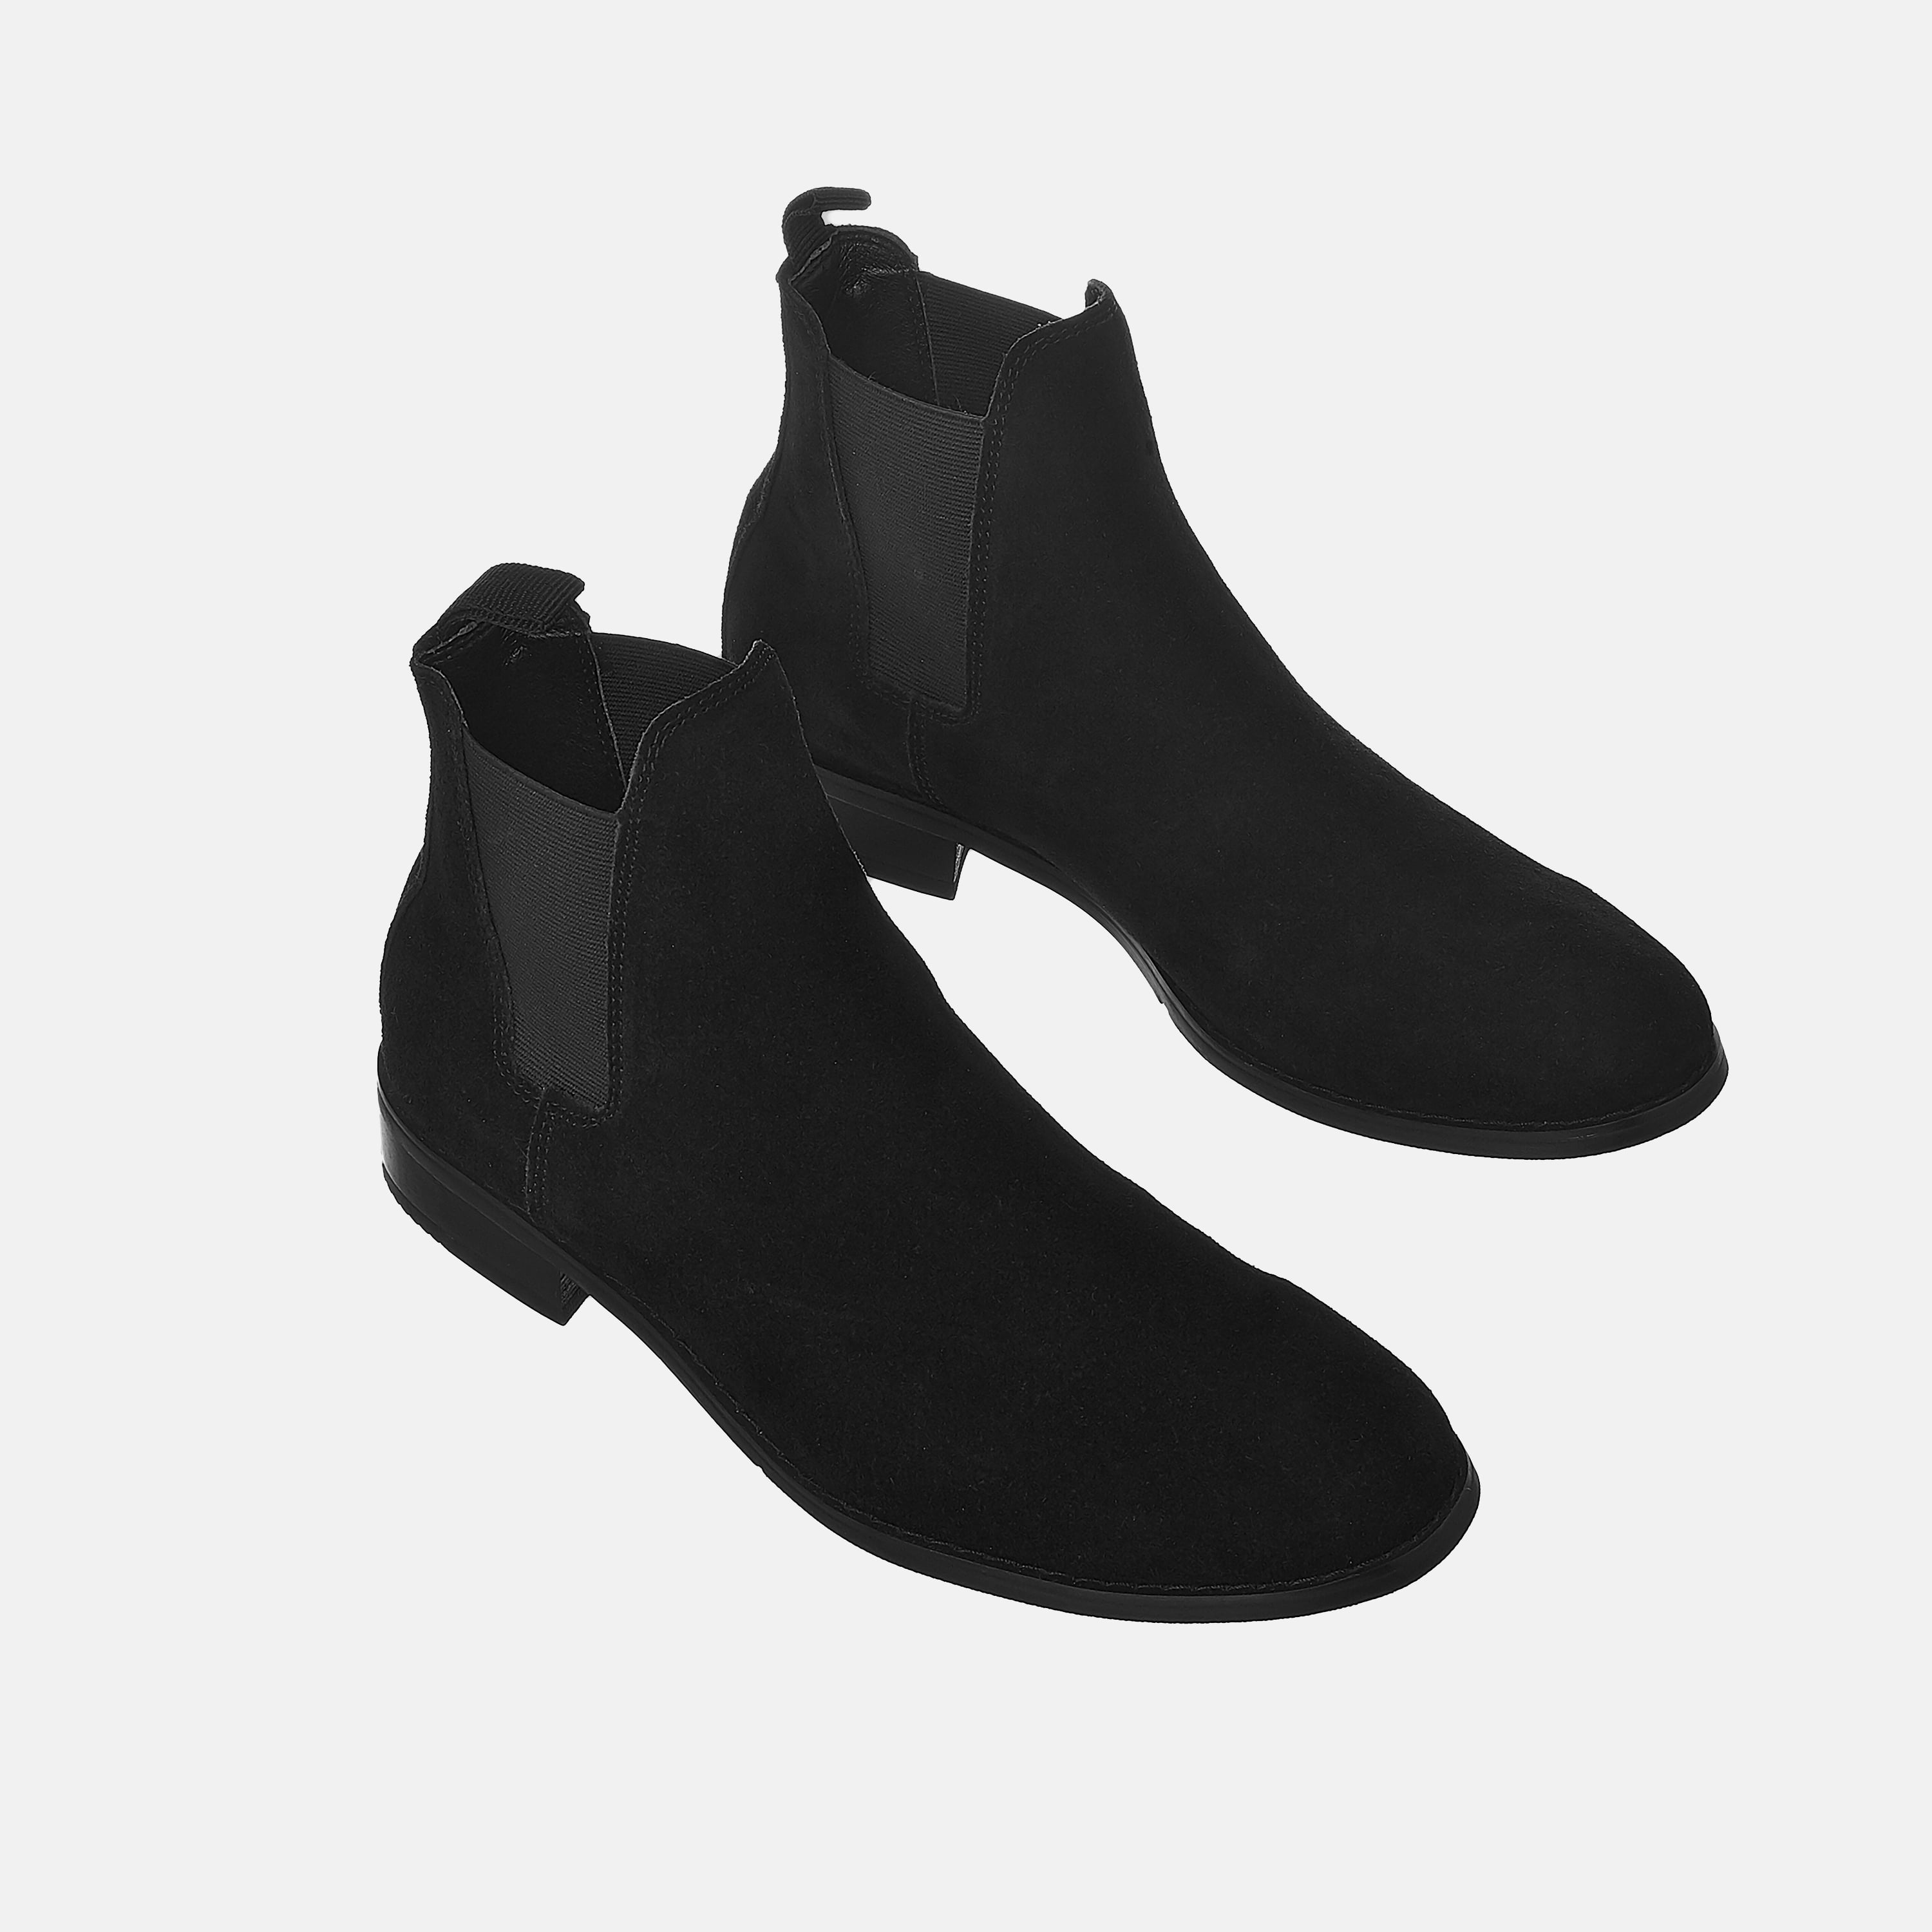 Suede Chelsea Boots In Black Suede Chelsea Boots In Black Product thumbnail 1